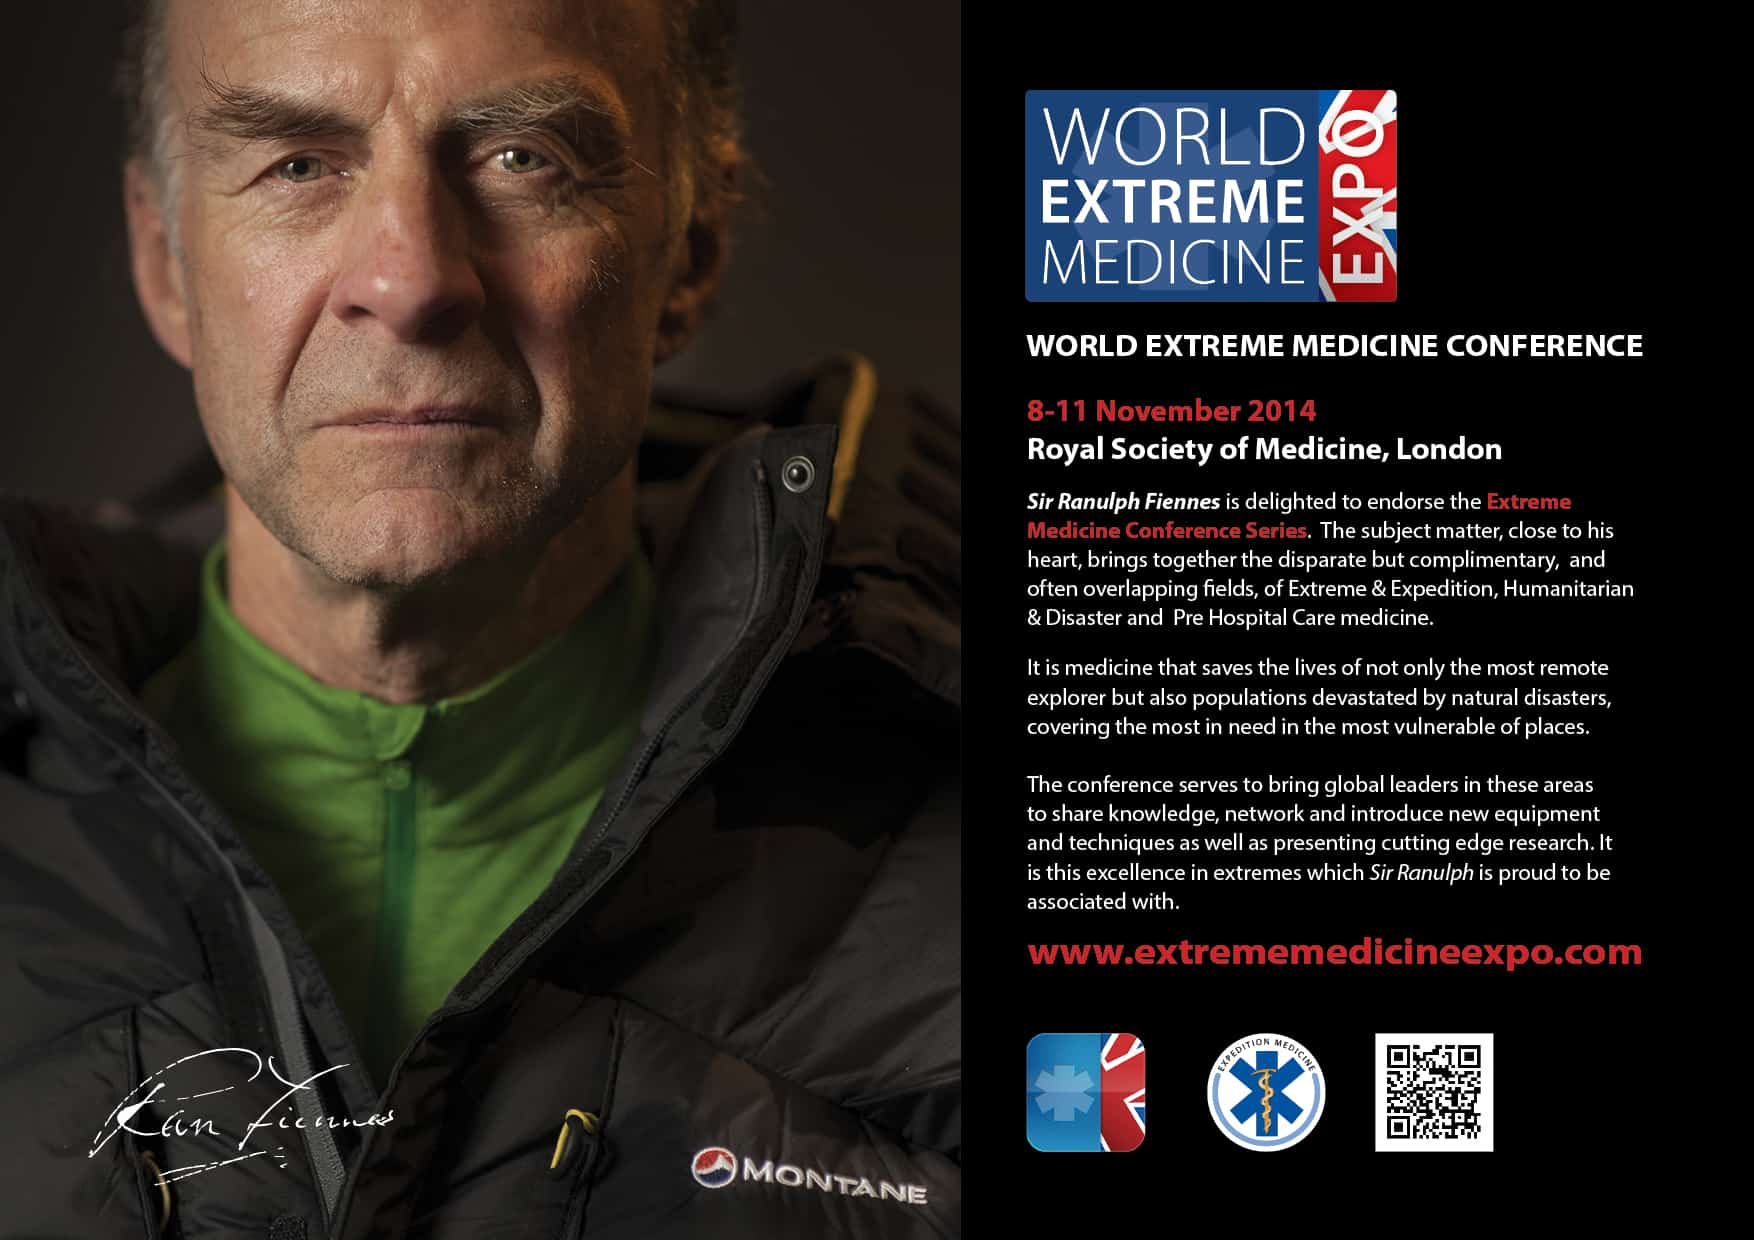 Sir Ranulph Fiennes and Extreme Medicine